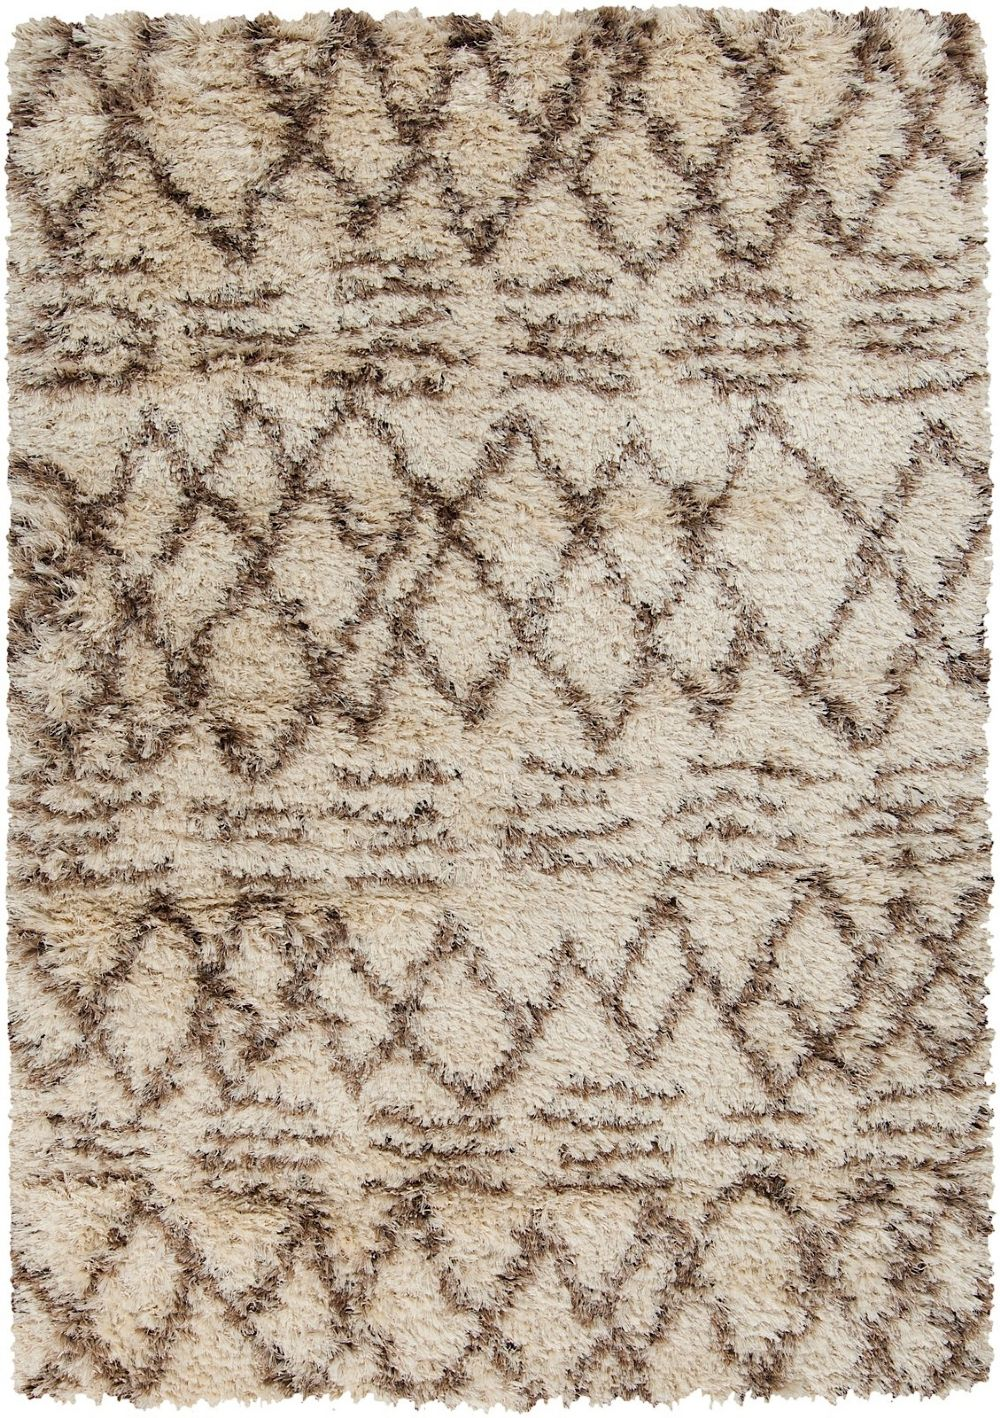 surya rhapsody plush area rug collection